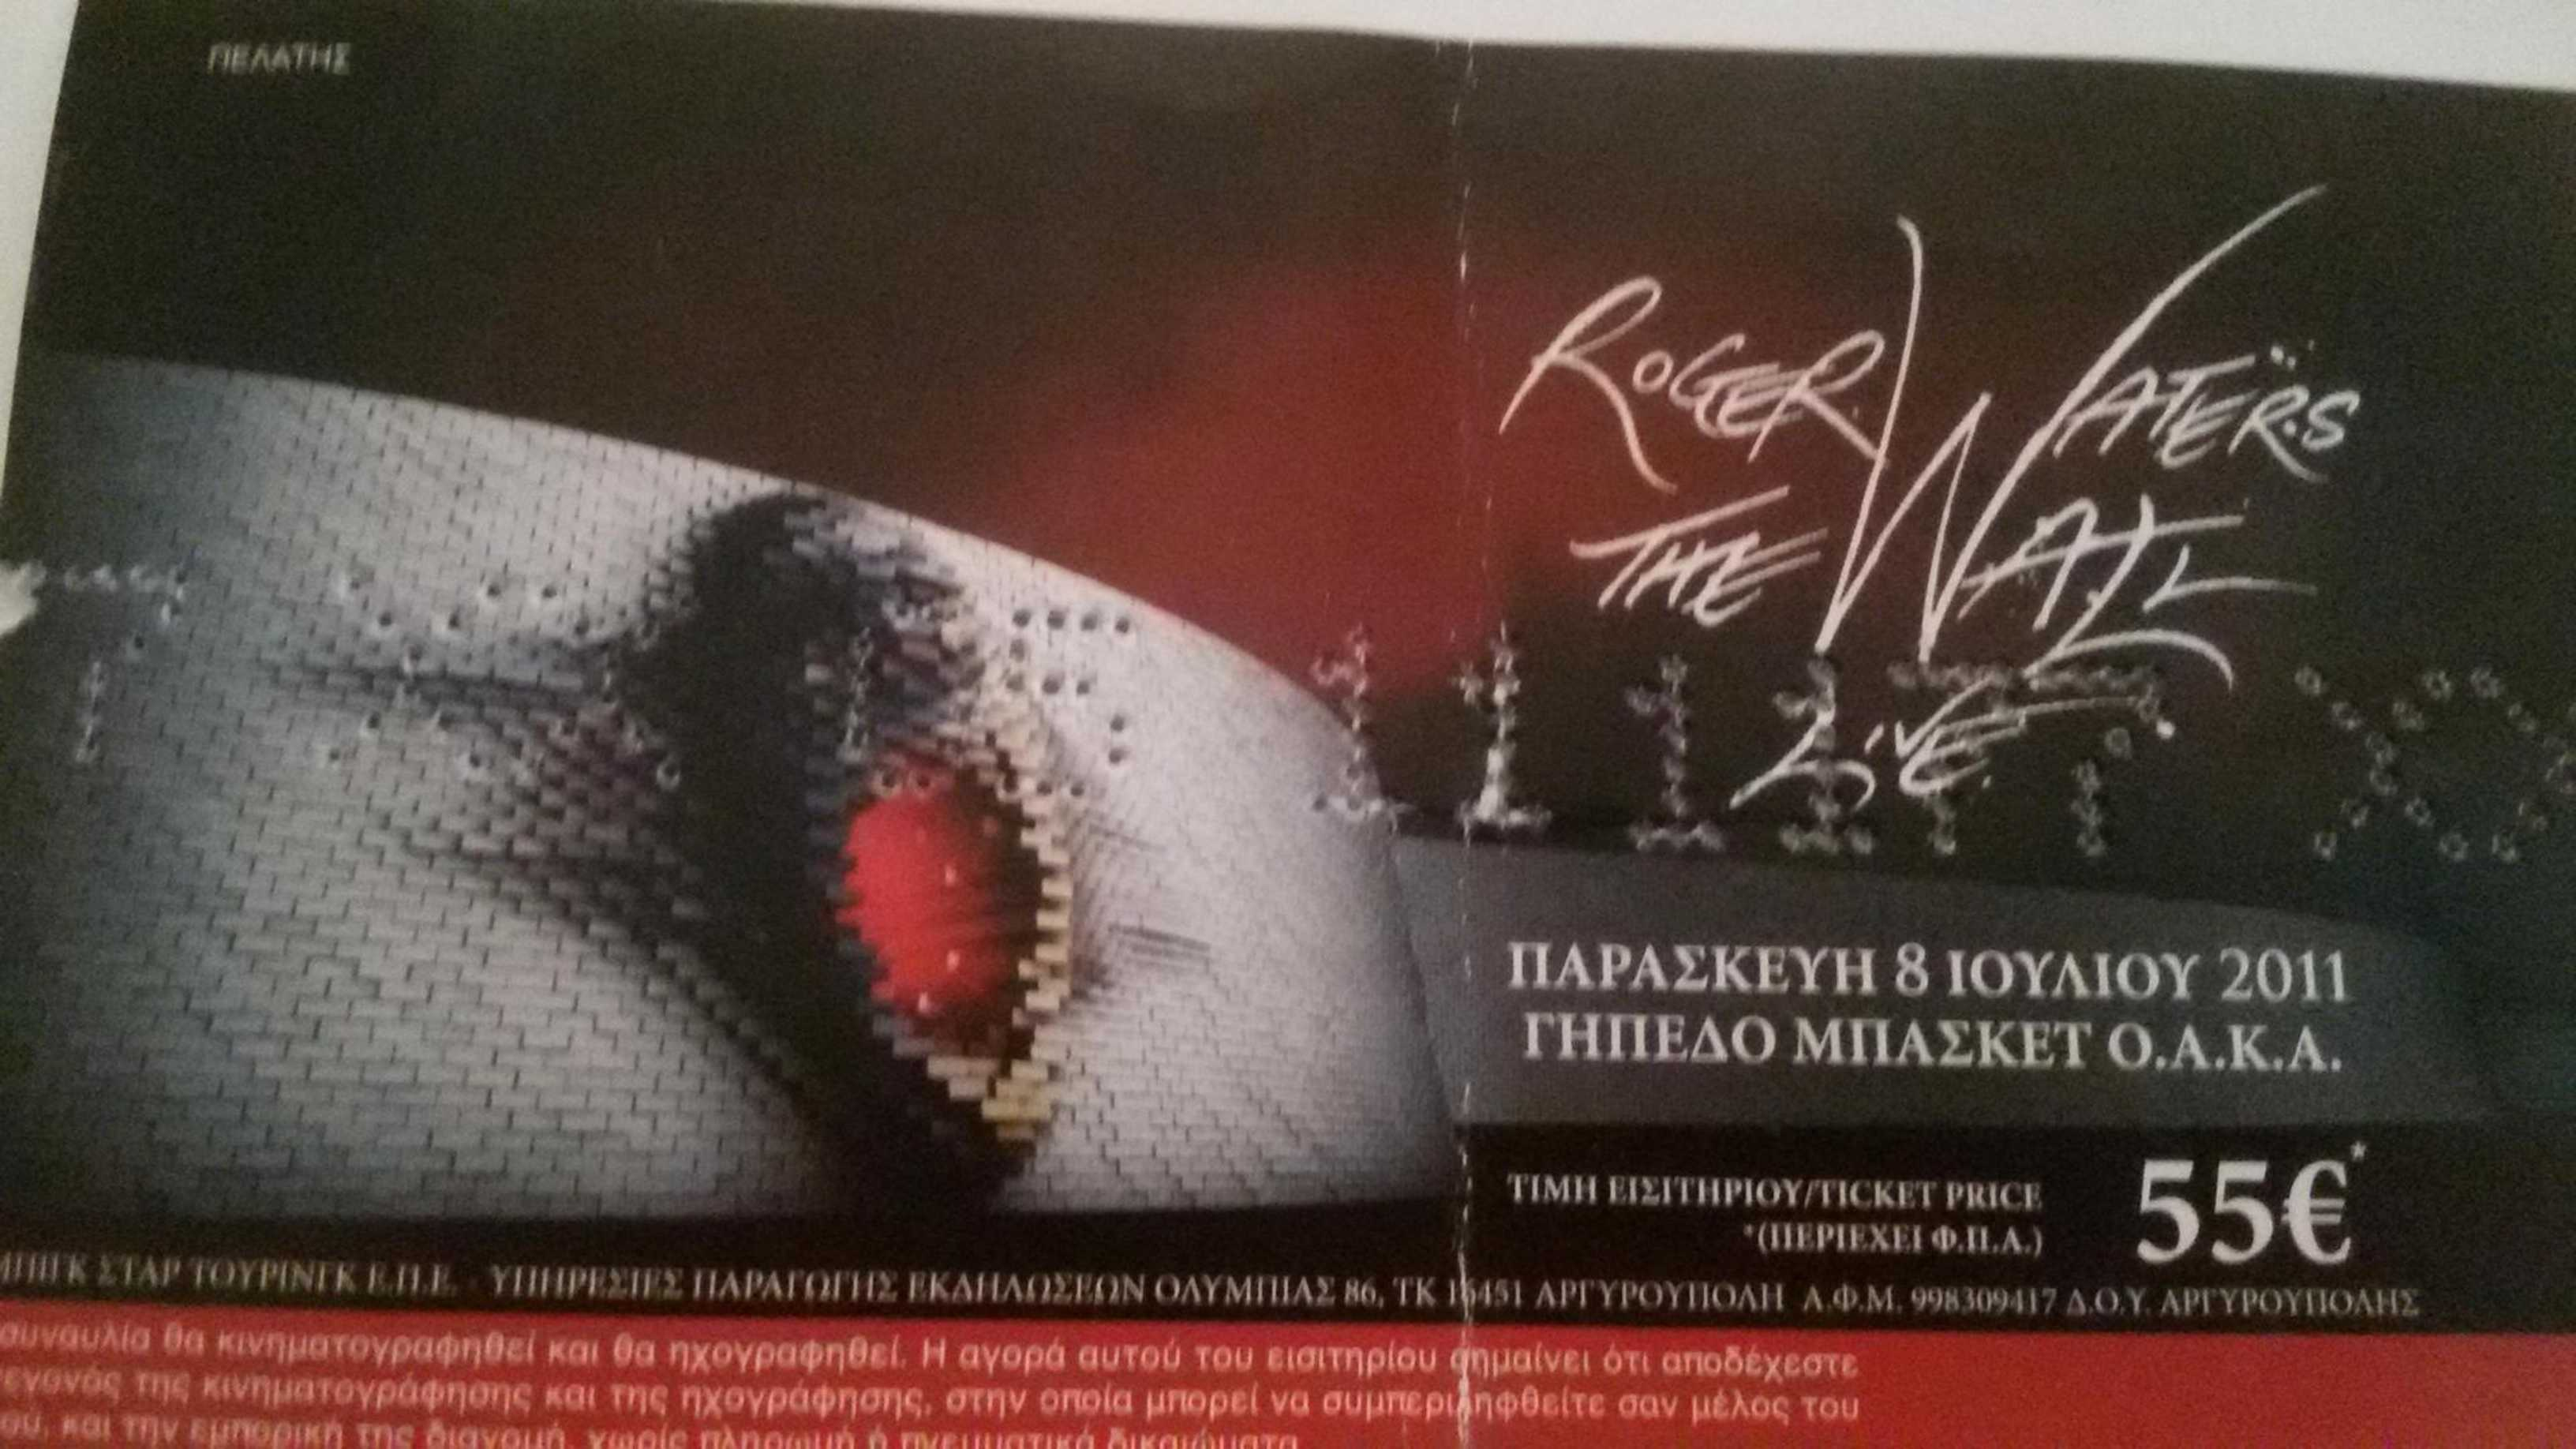 Roger Waters Ticket Athens 2011